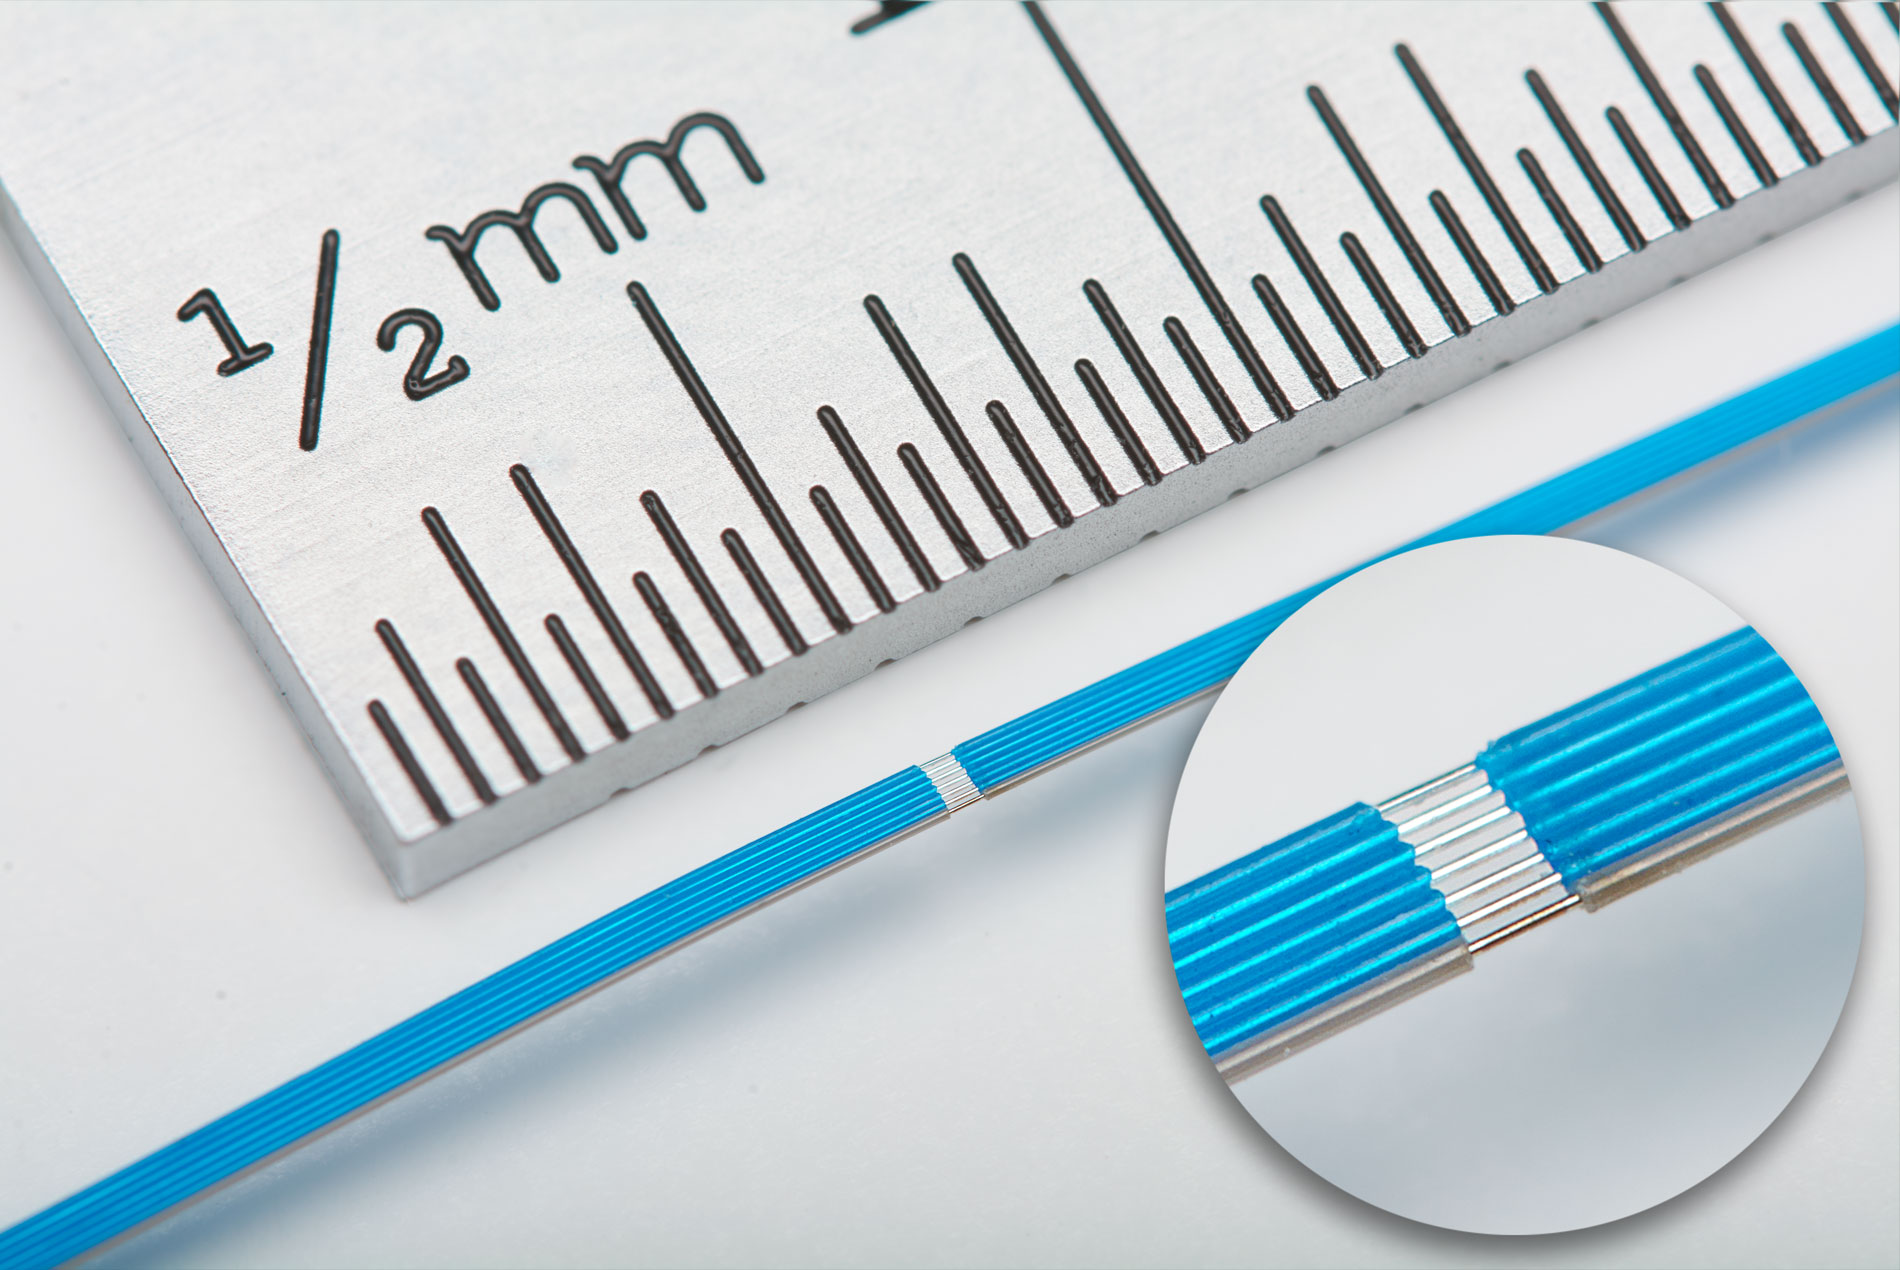 microwire against metric ruler photo